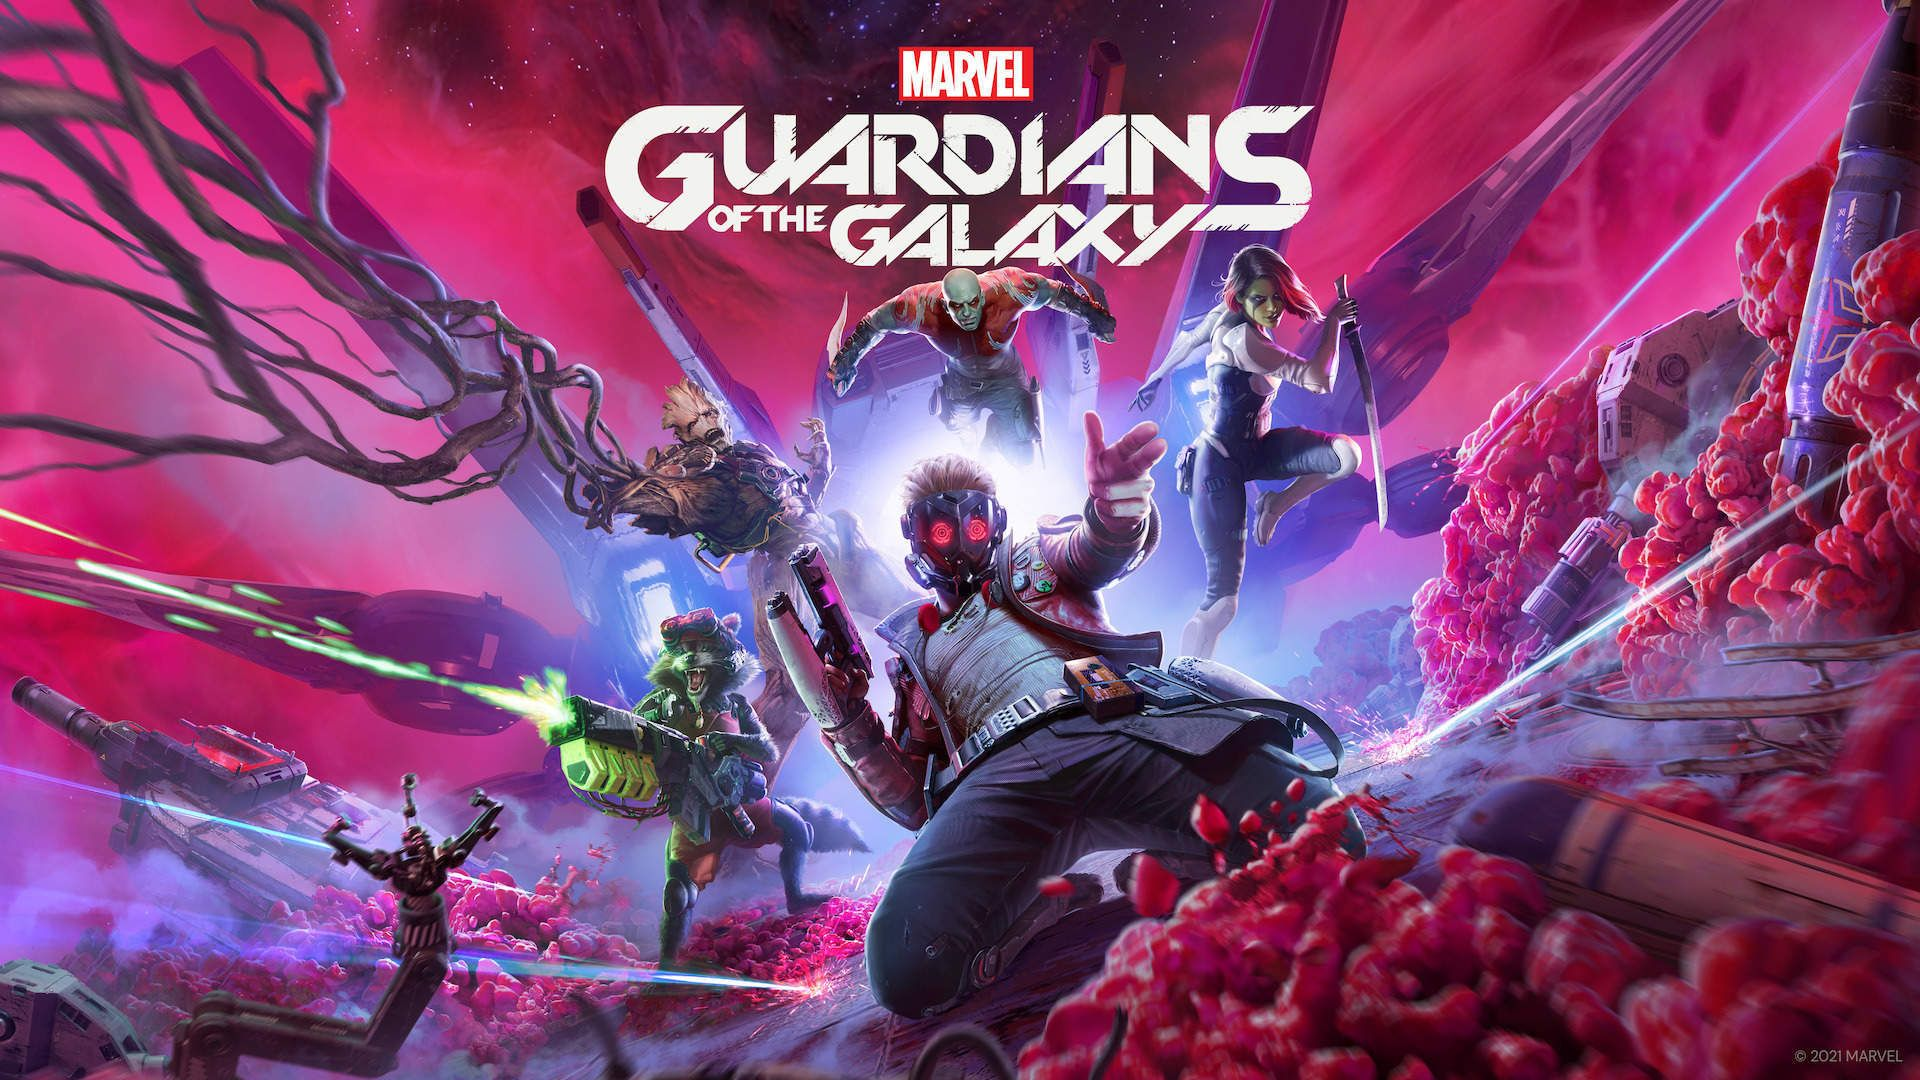 /guardians-of-the-galaxy-game-release-date-gameplay-story-5e1k37tn feature image